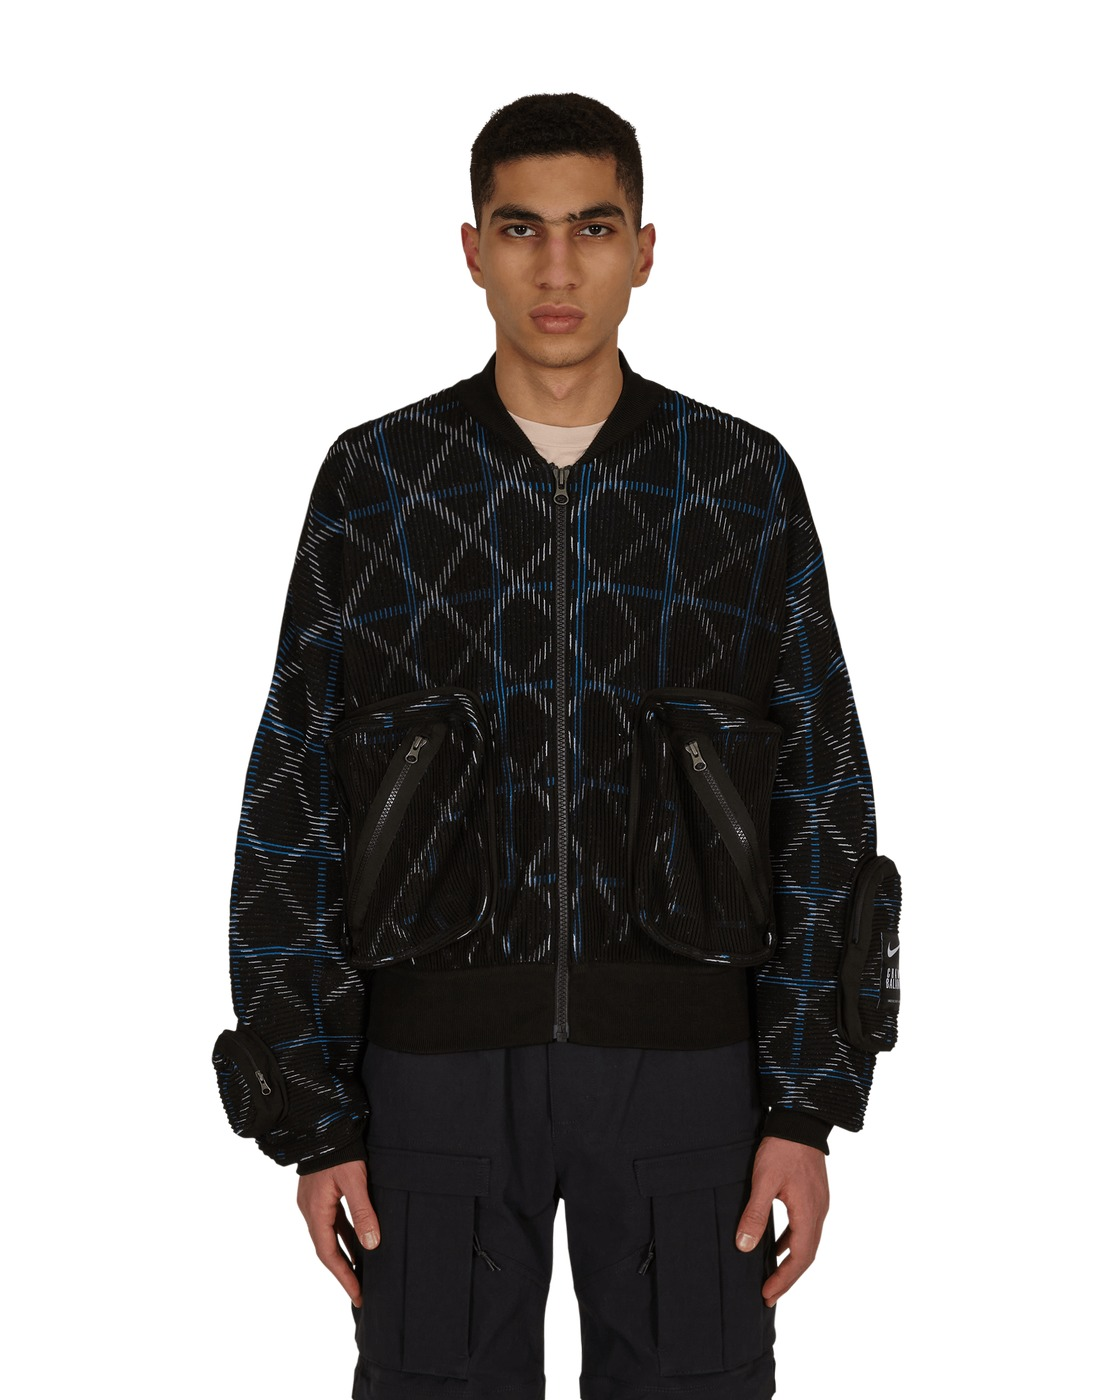 Nike Special Project Undercover Knit Ma 1 Jacket Black